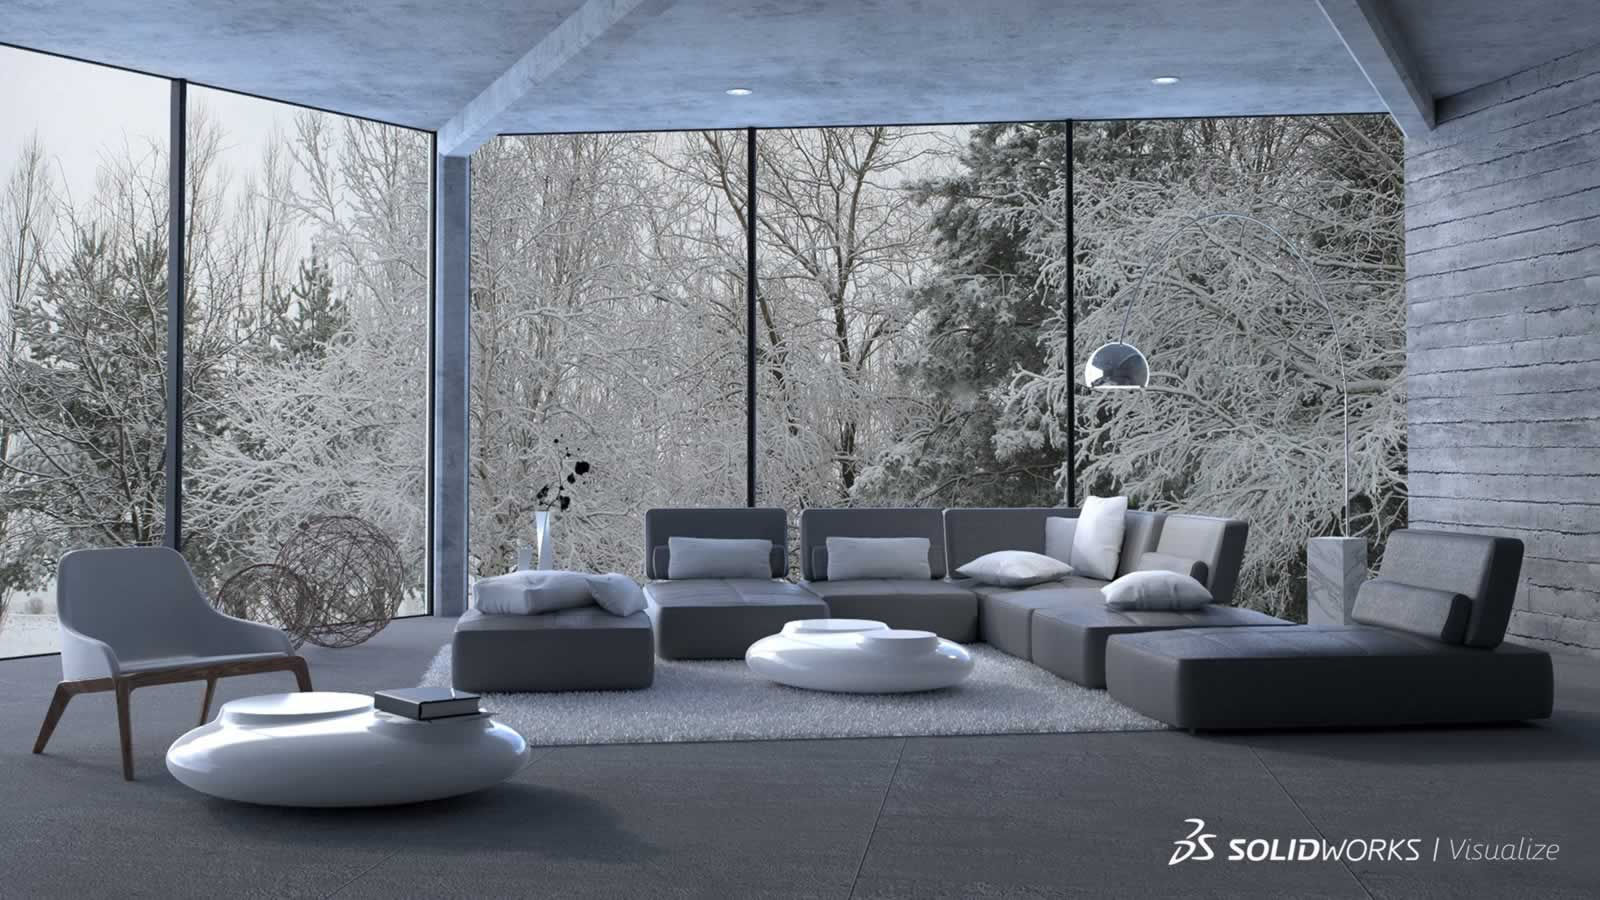 Solidworks visualize rendering tool for engineers for Interior architecture designs